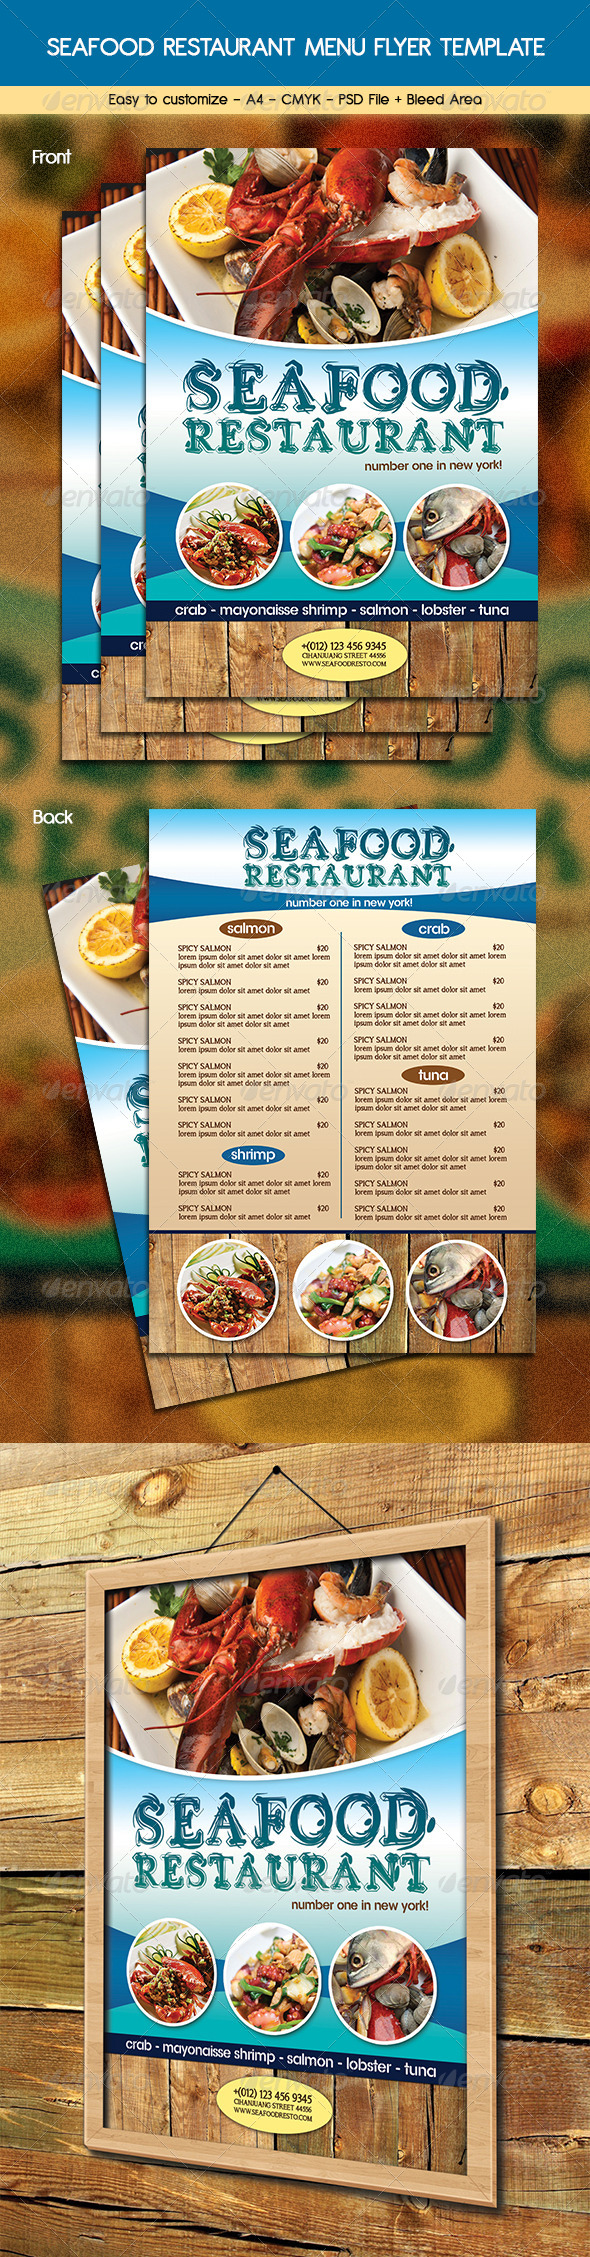 Print Templates - Seafood Restaurant Menu Flyer | GraphicRiver